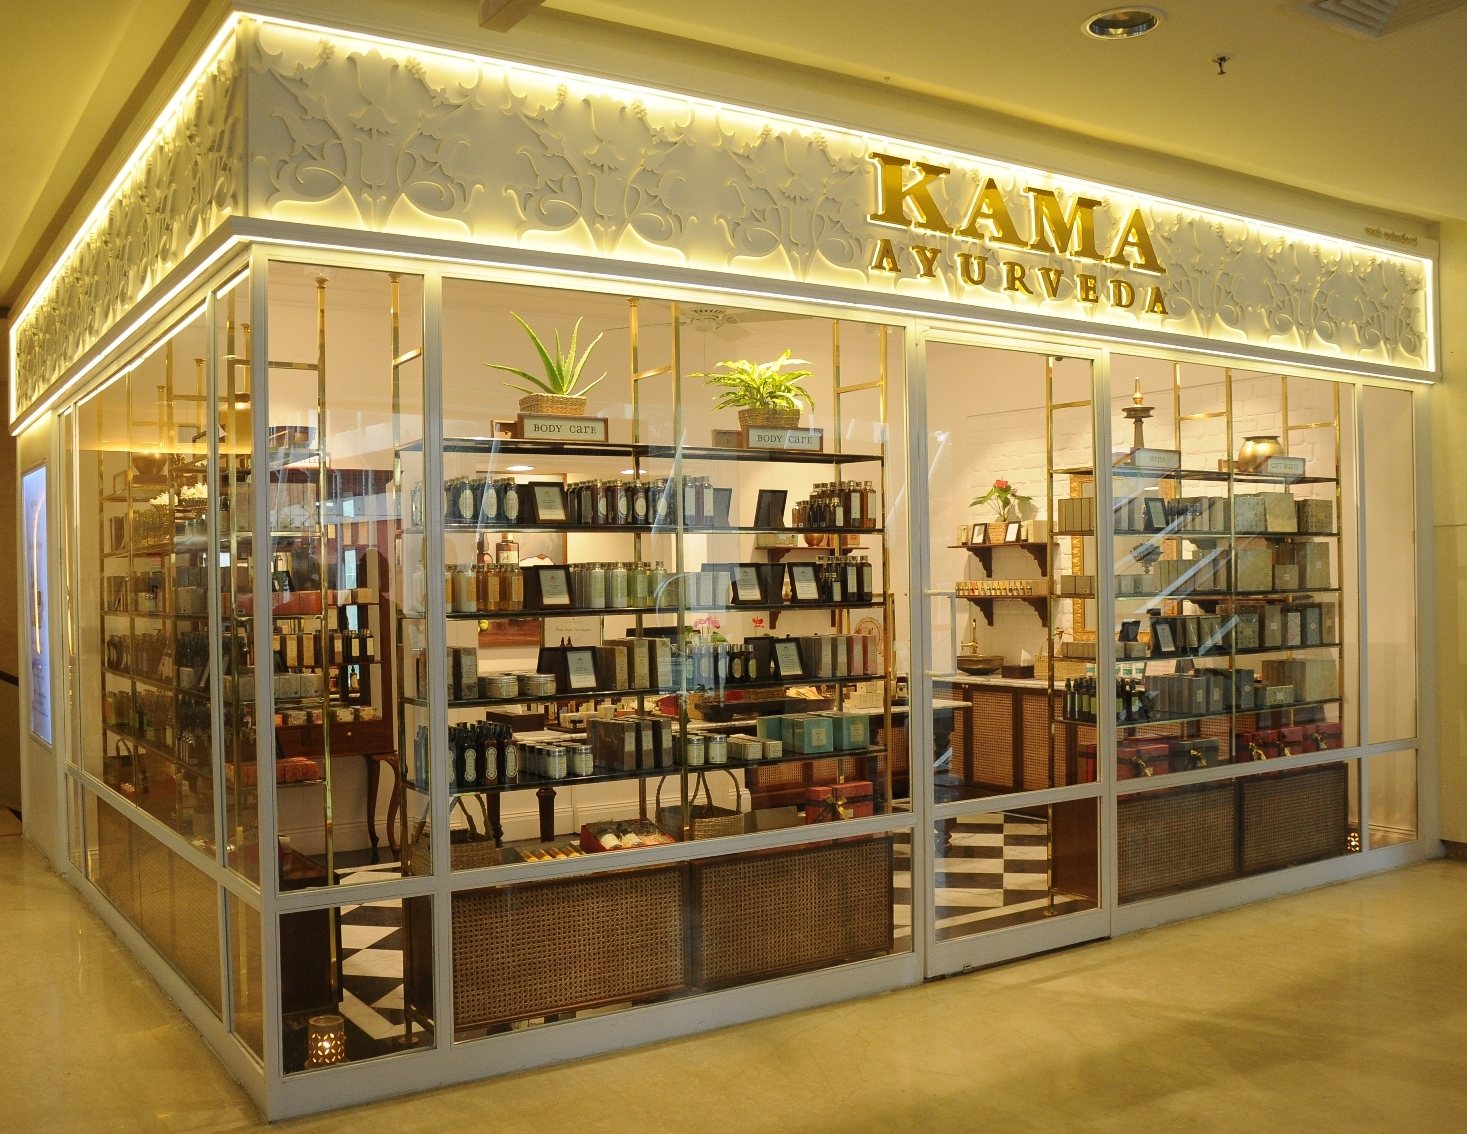 Kama Ayurveda Store at 1 MG mall Bangalore the jeromy diaries beauty blogger